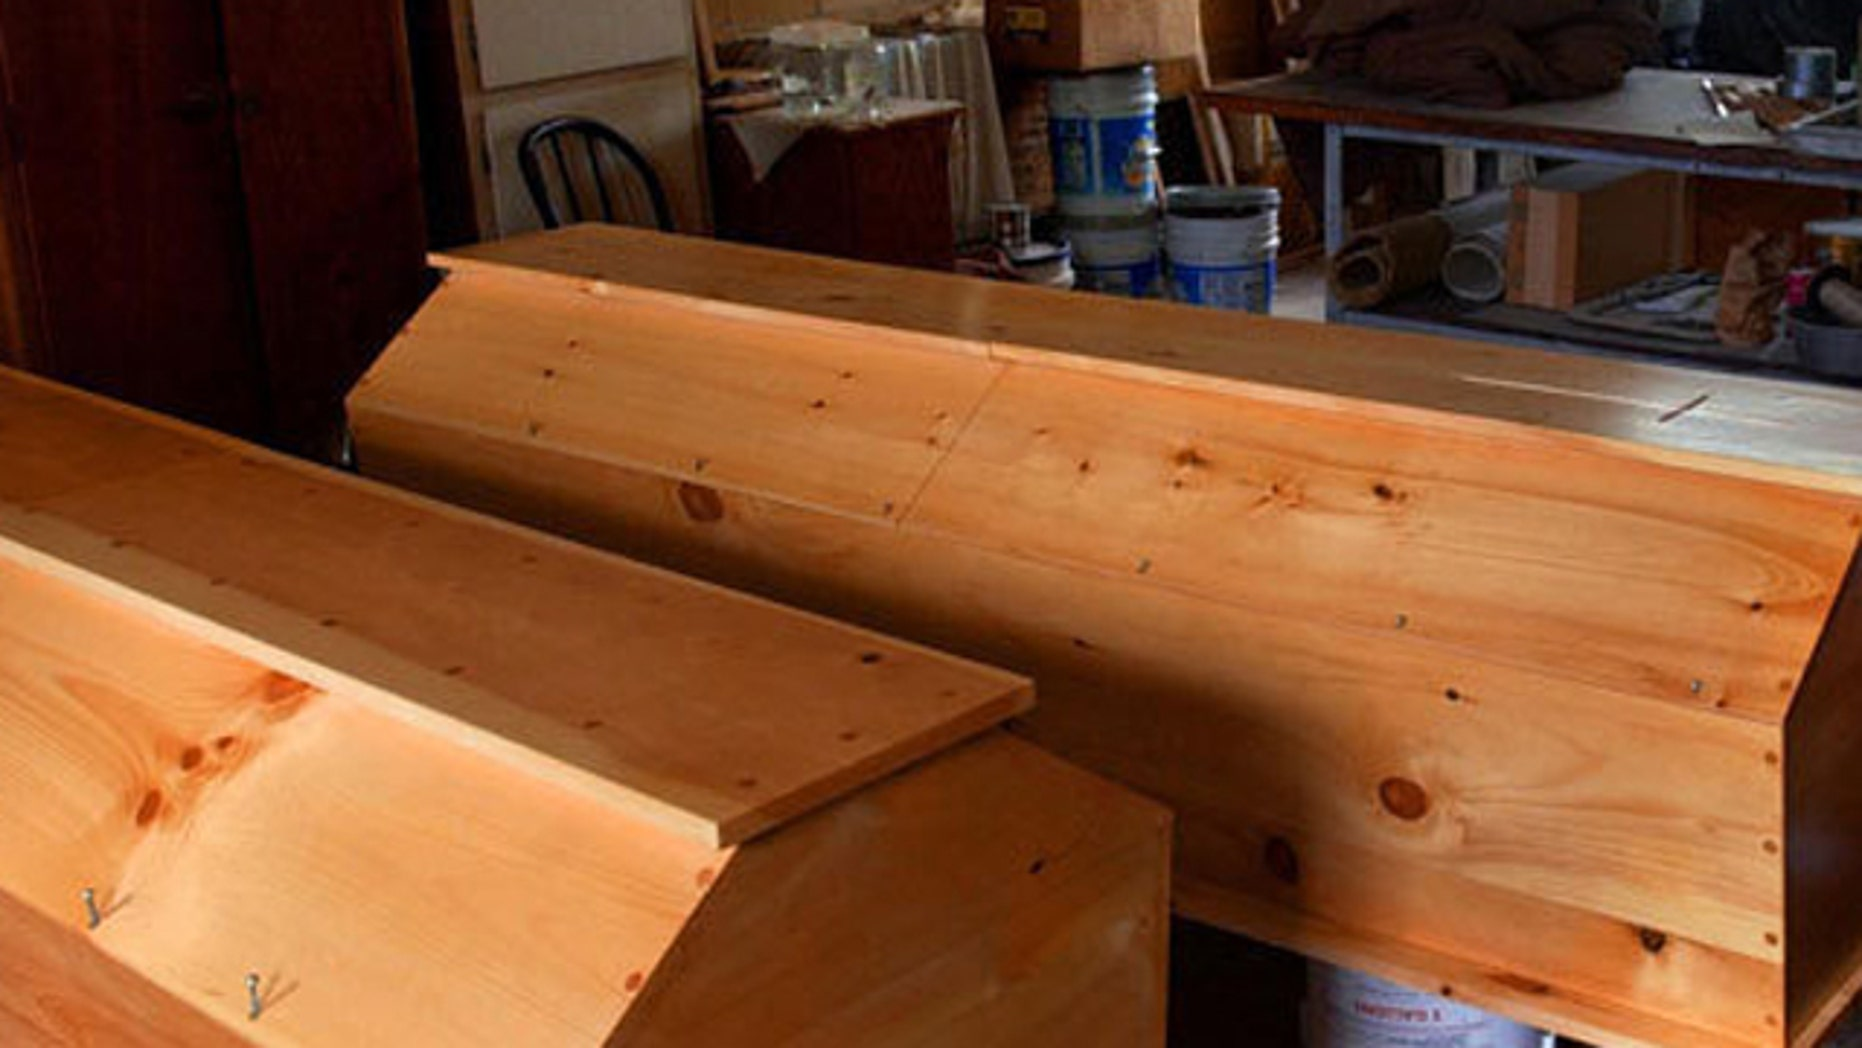 The monks make handcrafted caskets like these pictured.